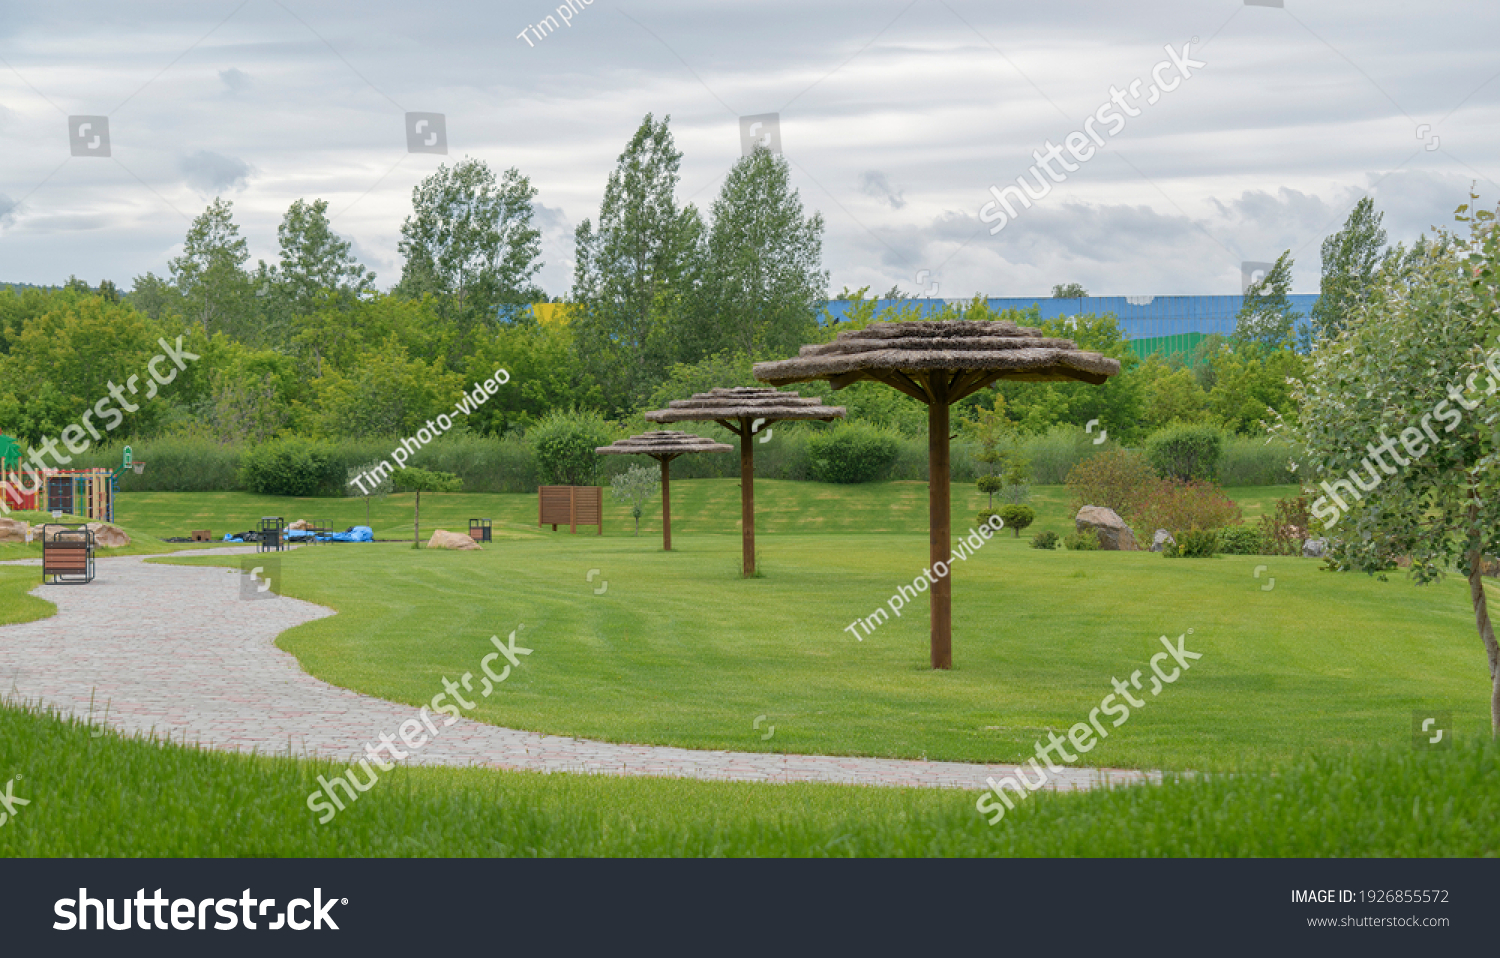 stock-photo-green-lawn-in-summer-mowed-l